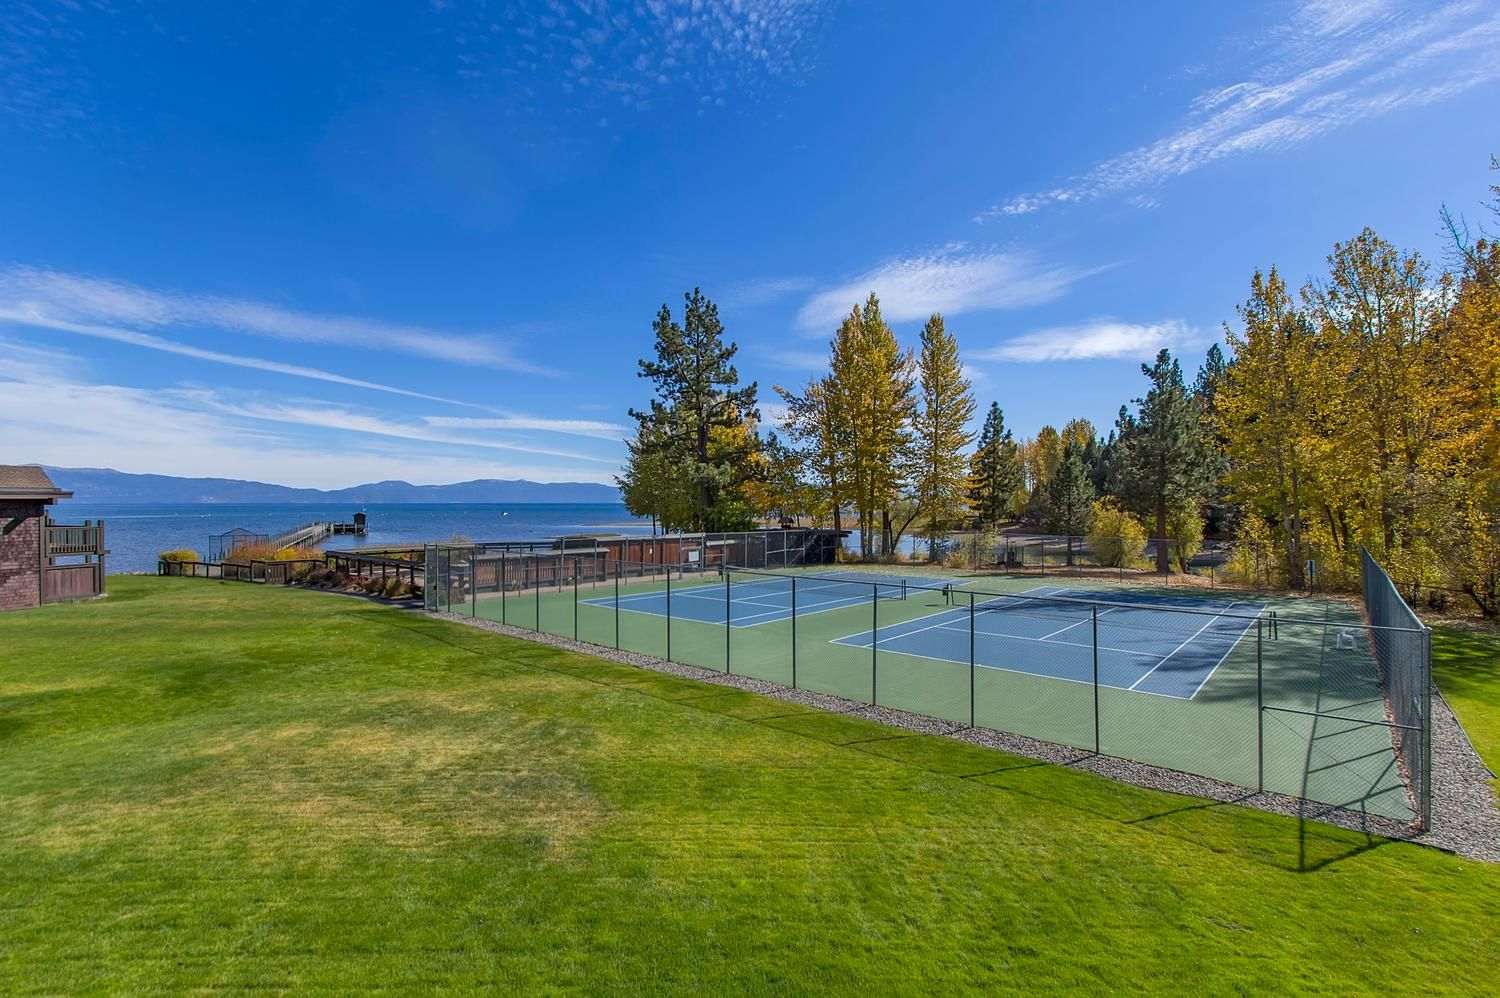 Tennis courts and Lake Tahoe from the Tahoe Marina Lodge